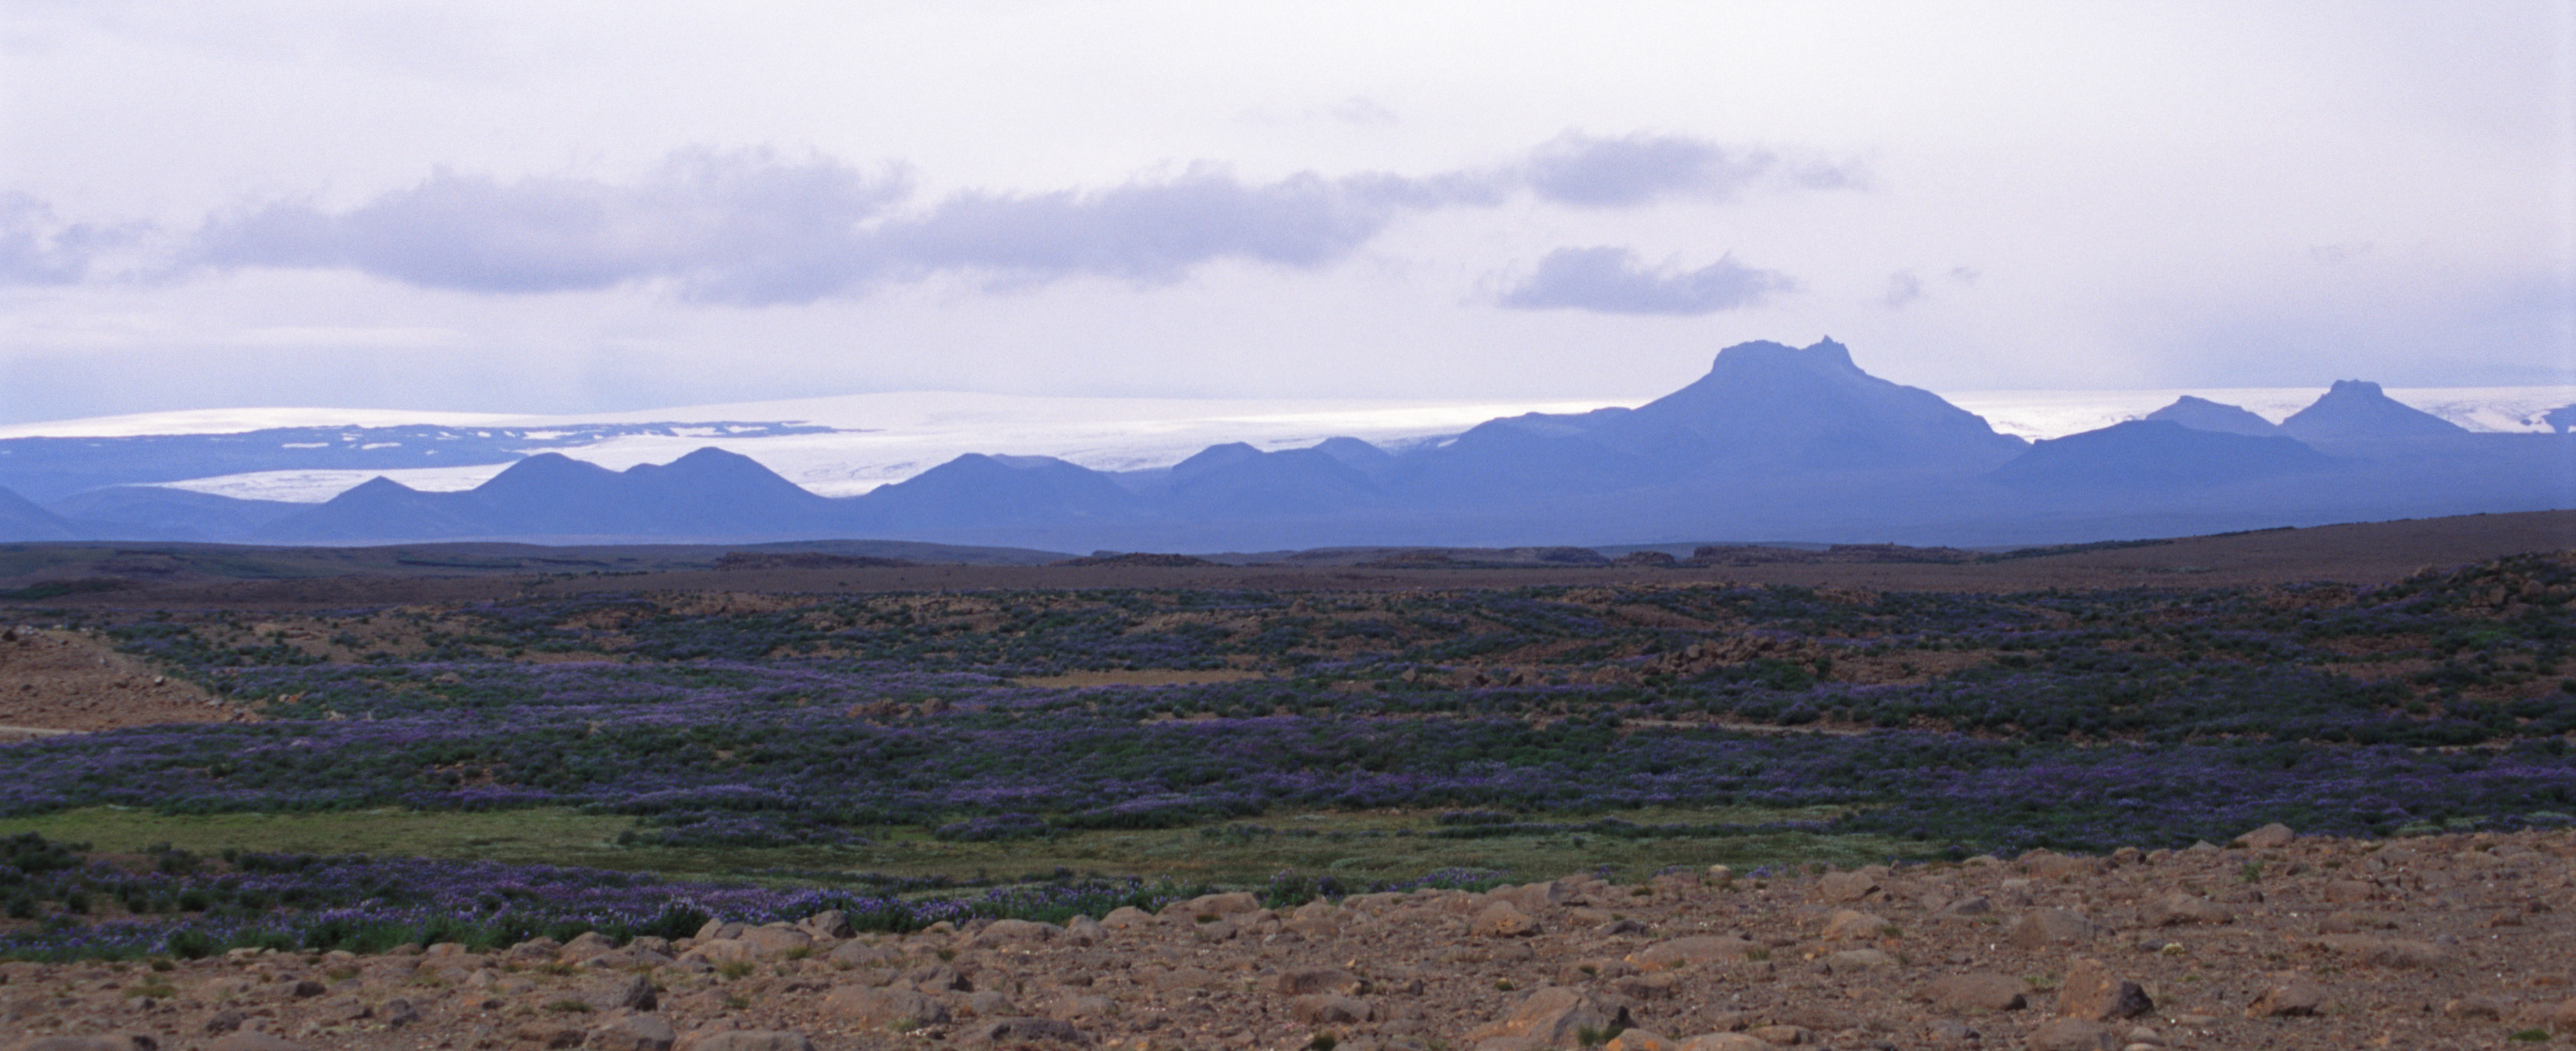 Panoramic Iceland landscape with blue lupins flowering on the grassland and a glacier on a distant volcanic mountain rane